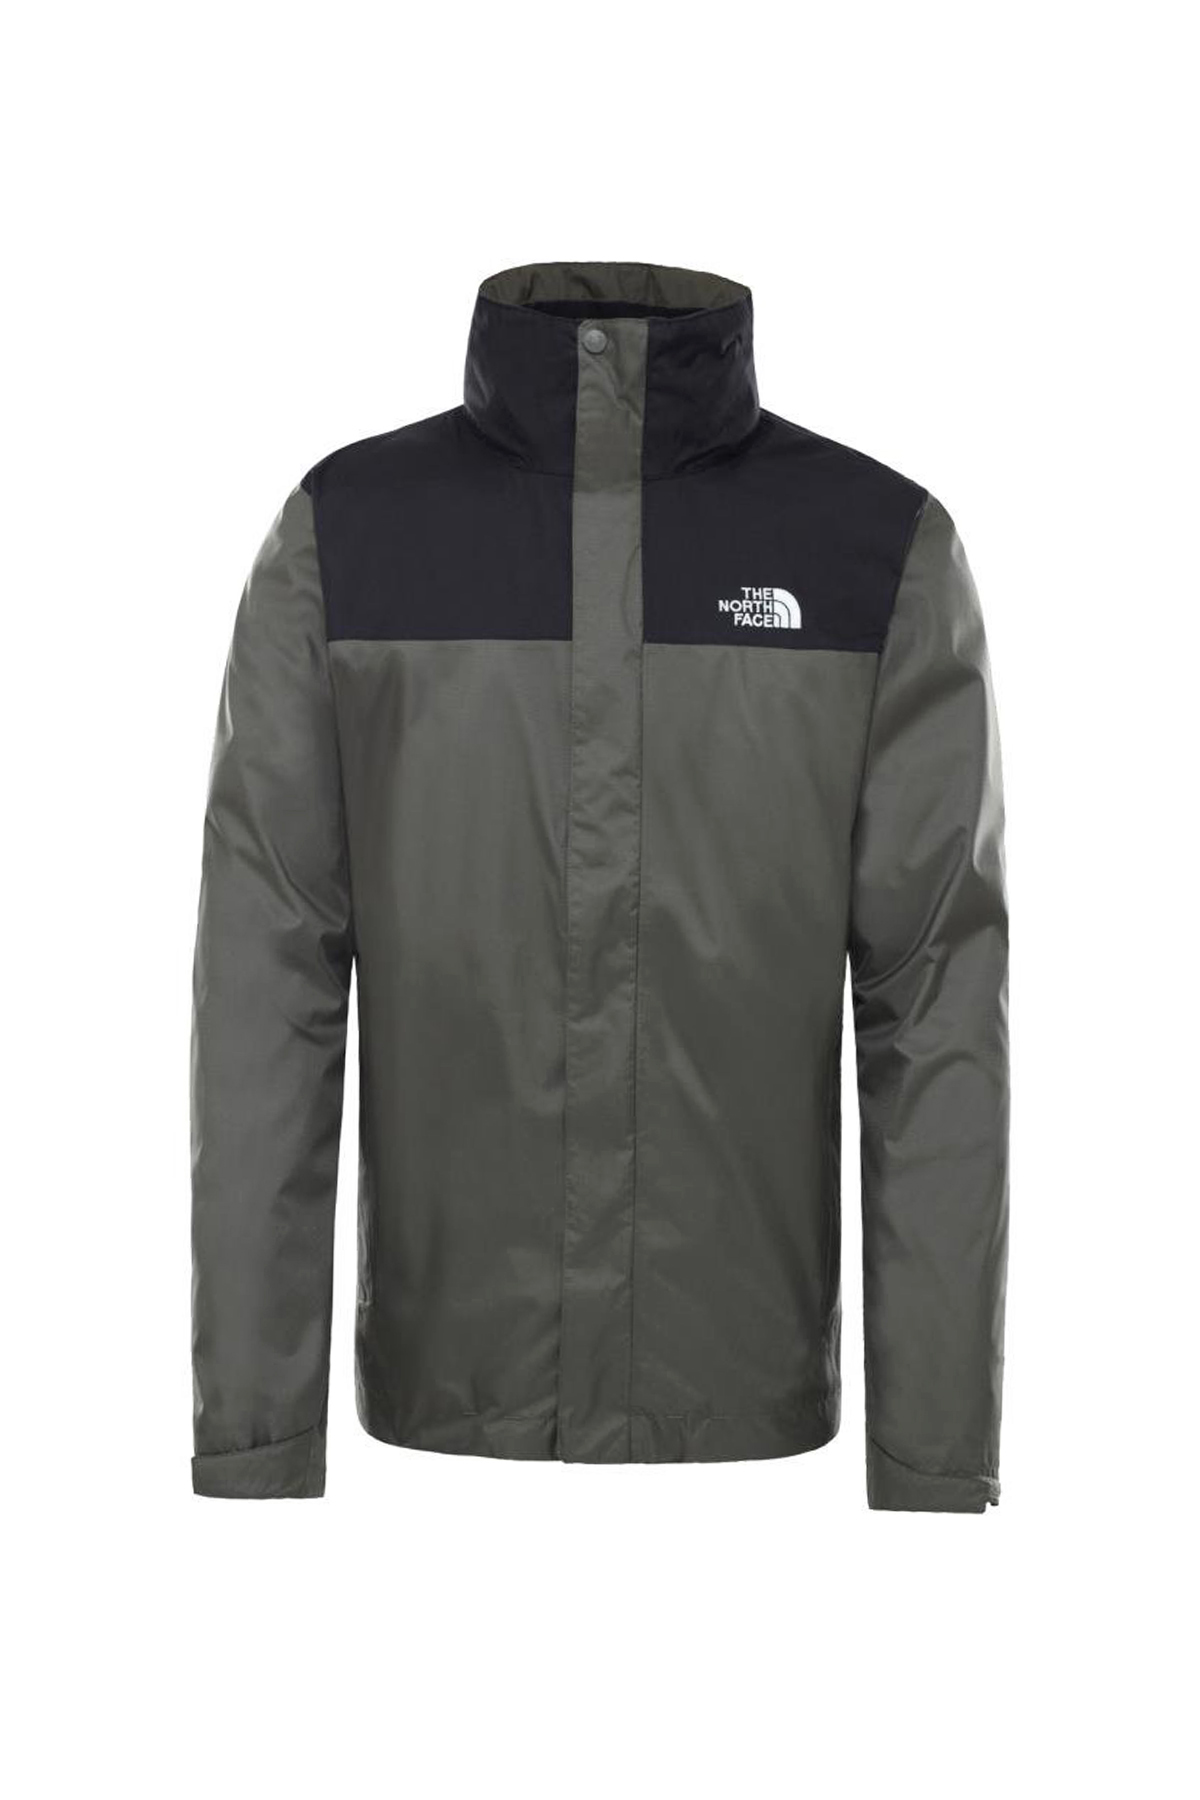 The North Face Trıclımate Jacket Erkek Haki-Siyah (NF00CG55BQW1TF11)